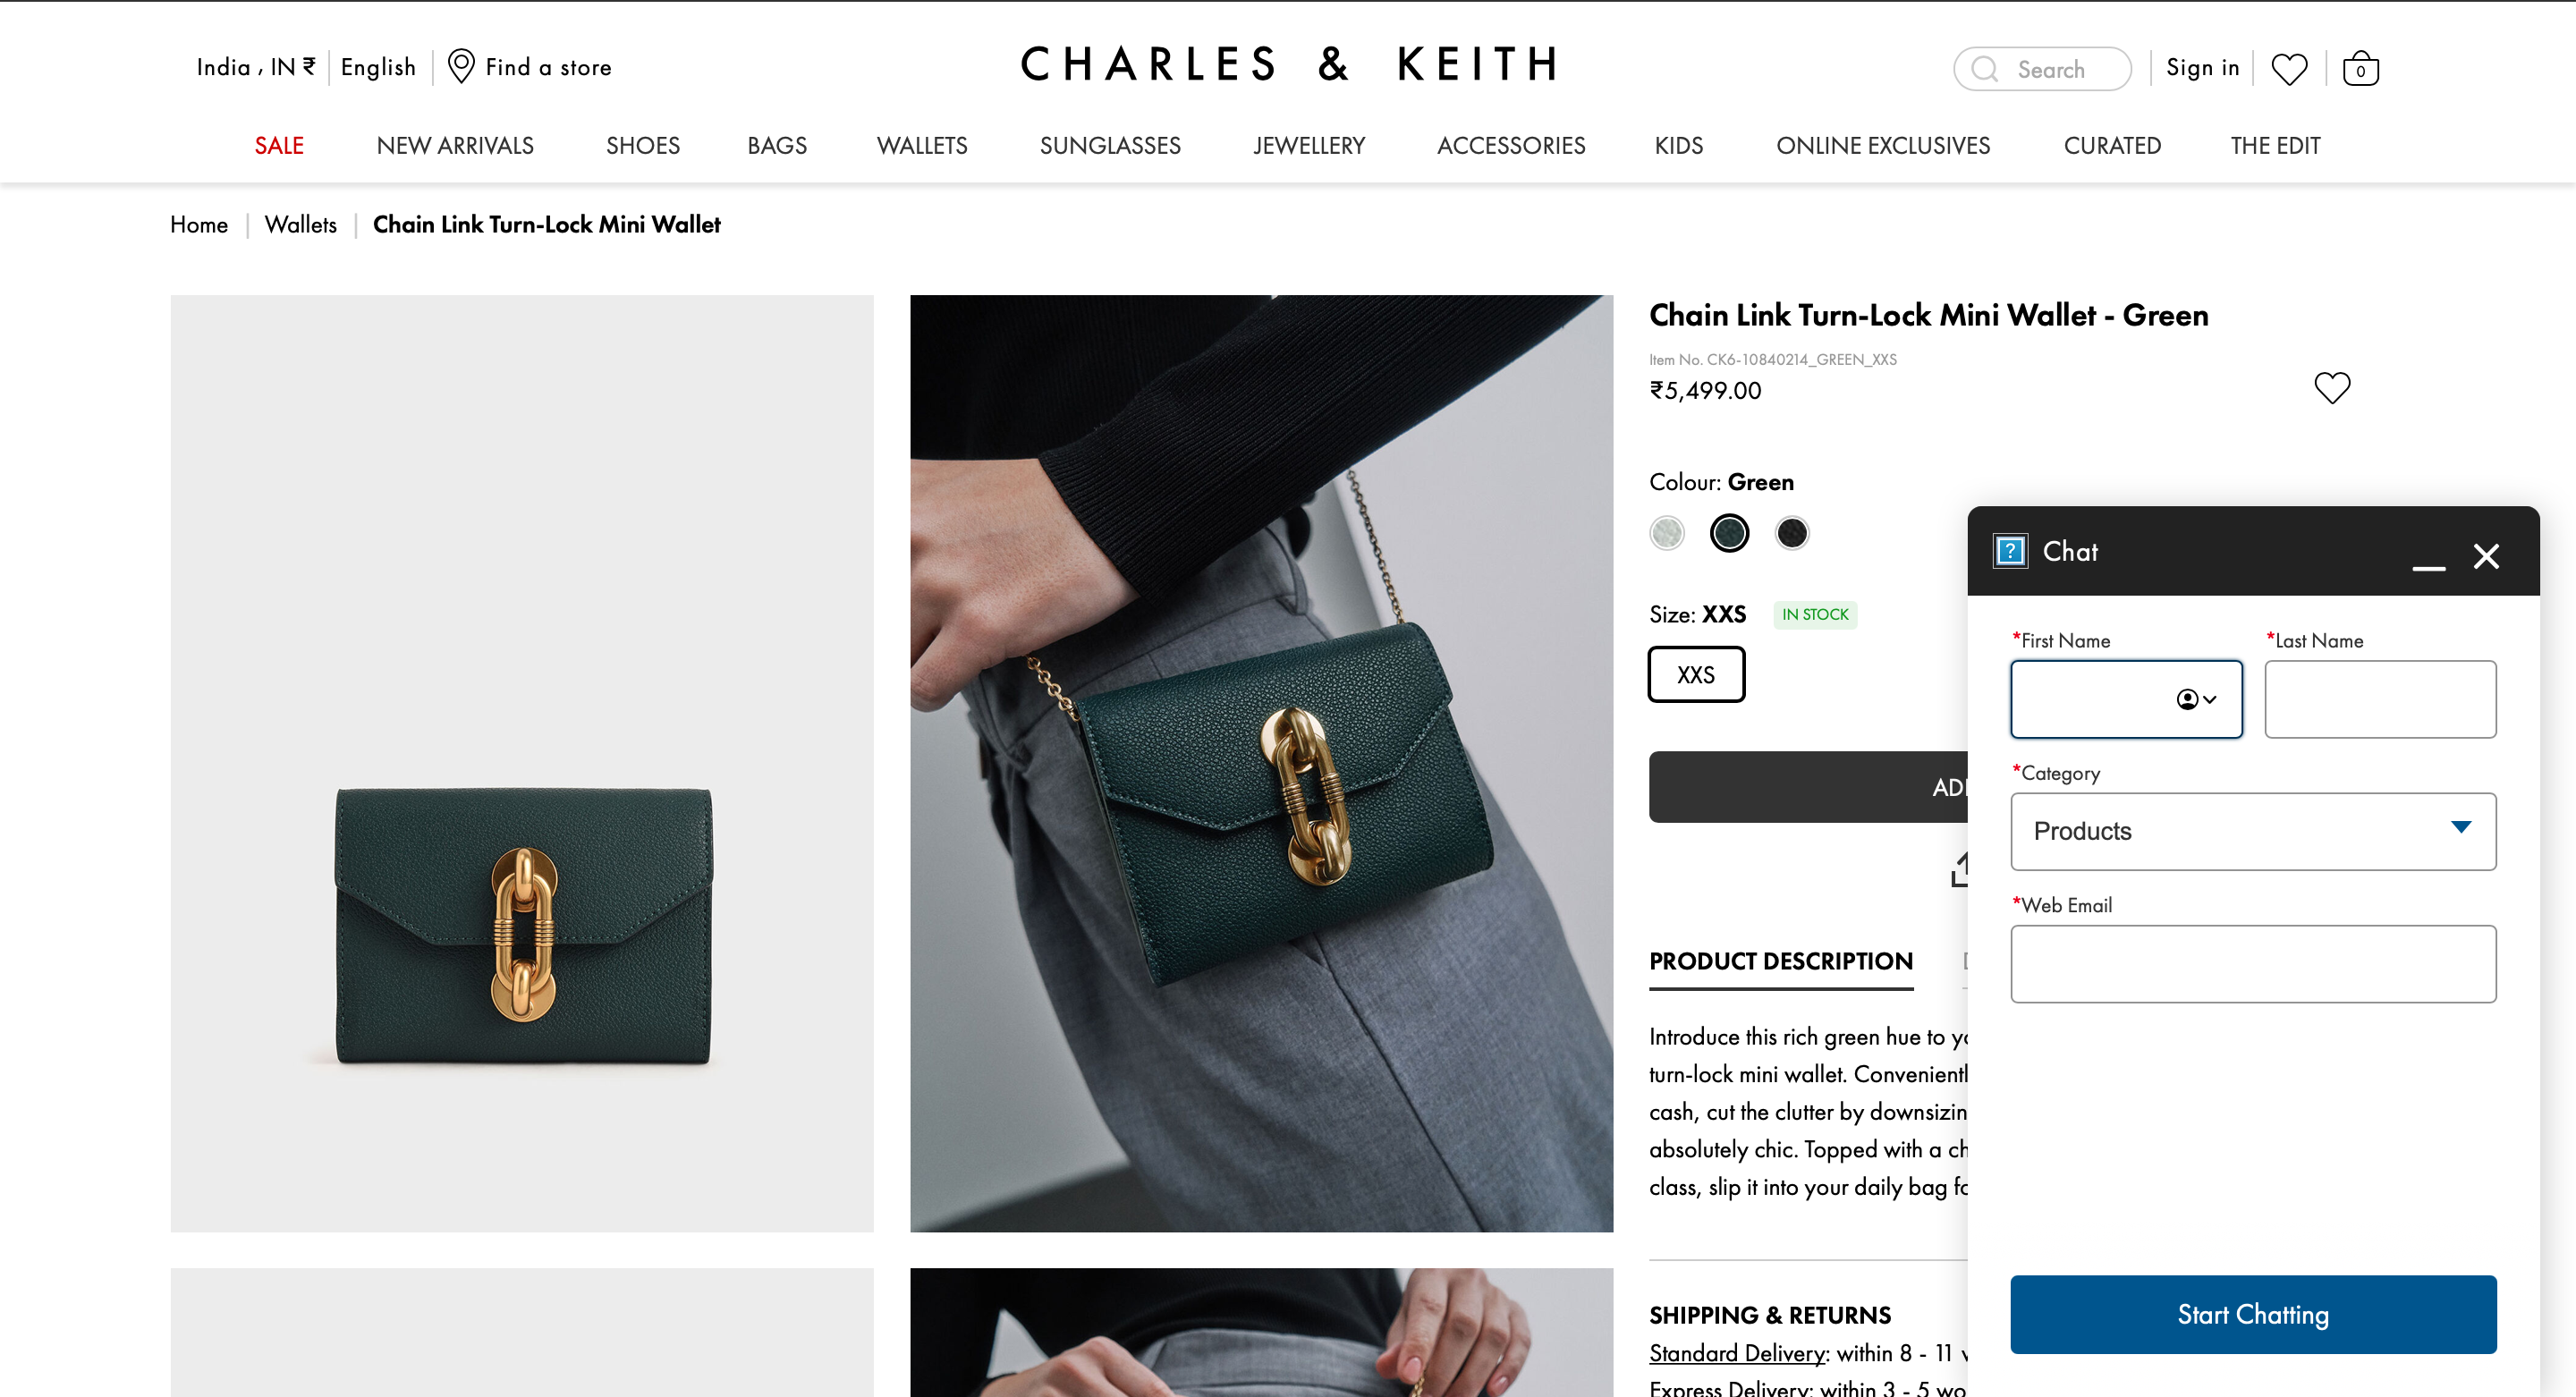 Charles & Keith has chatbots to assist shoppers